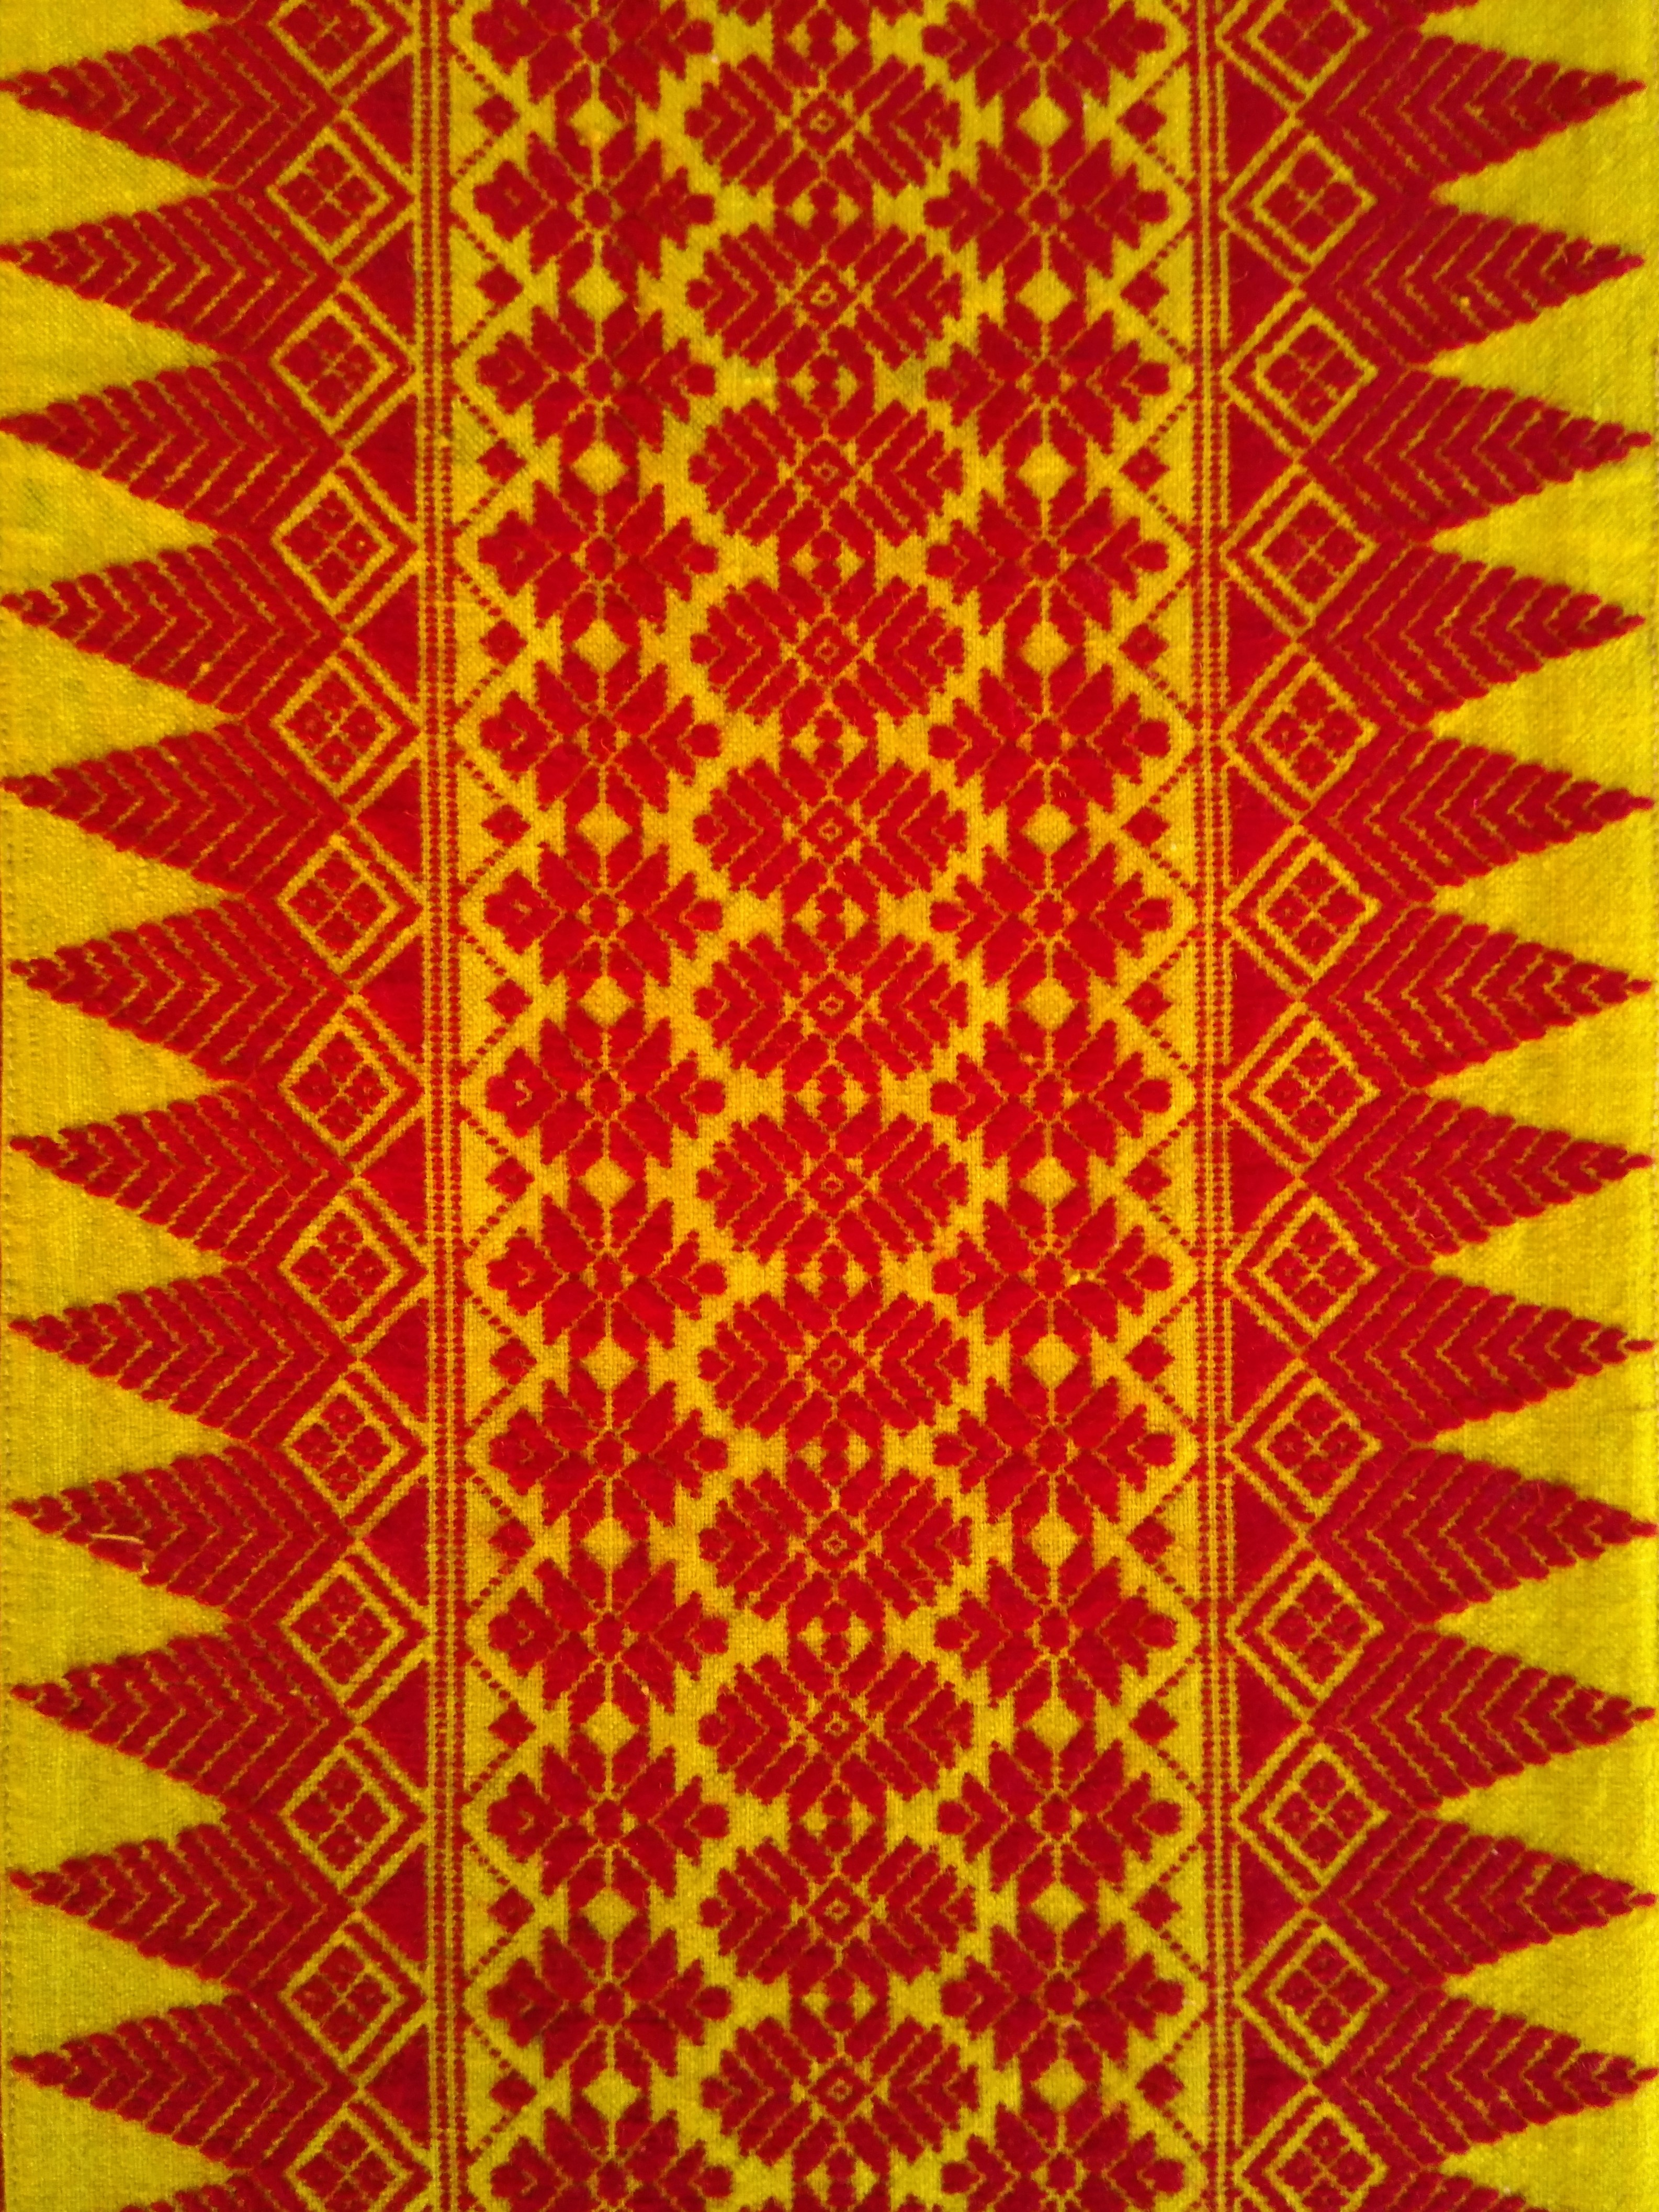 A variation of the hajw motif. Inspiration for the motifs are drawn from nature resembling the mountains, flowers, butterflies, and ferns. There are certain motifs that are especially woven in an arnai for success and health.